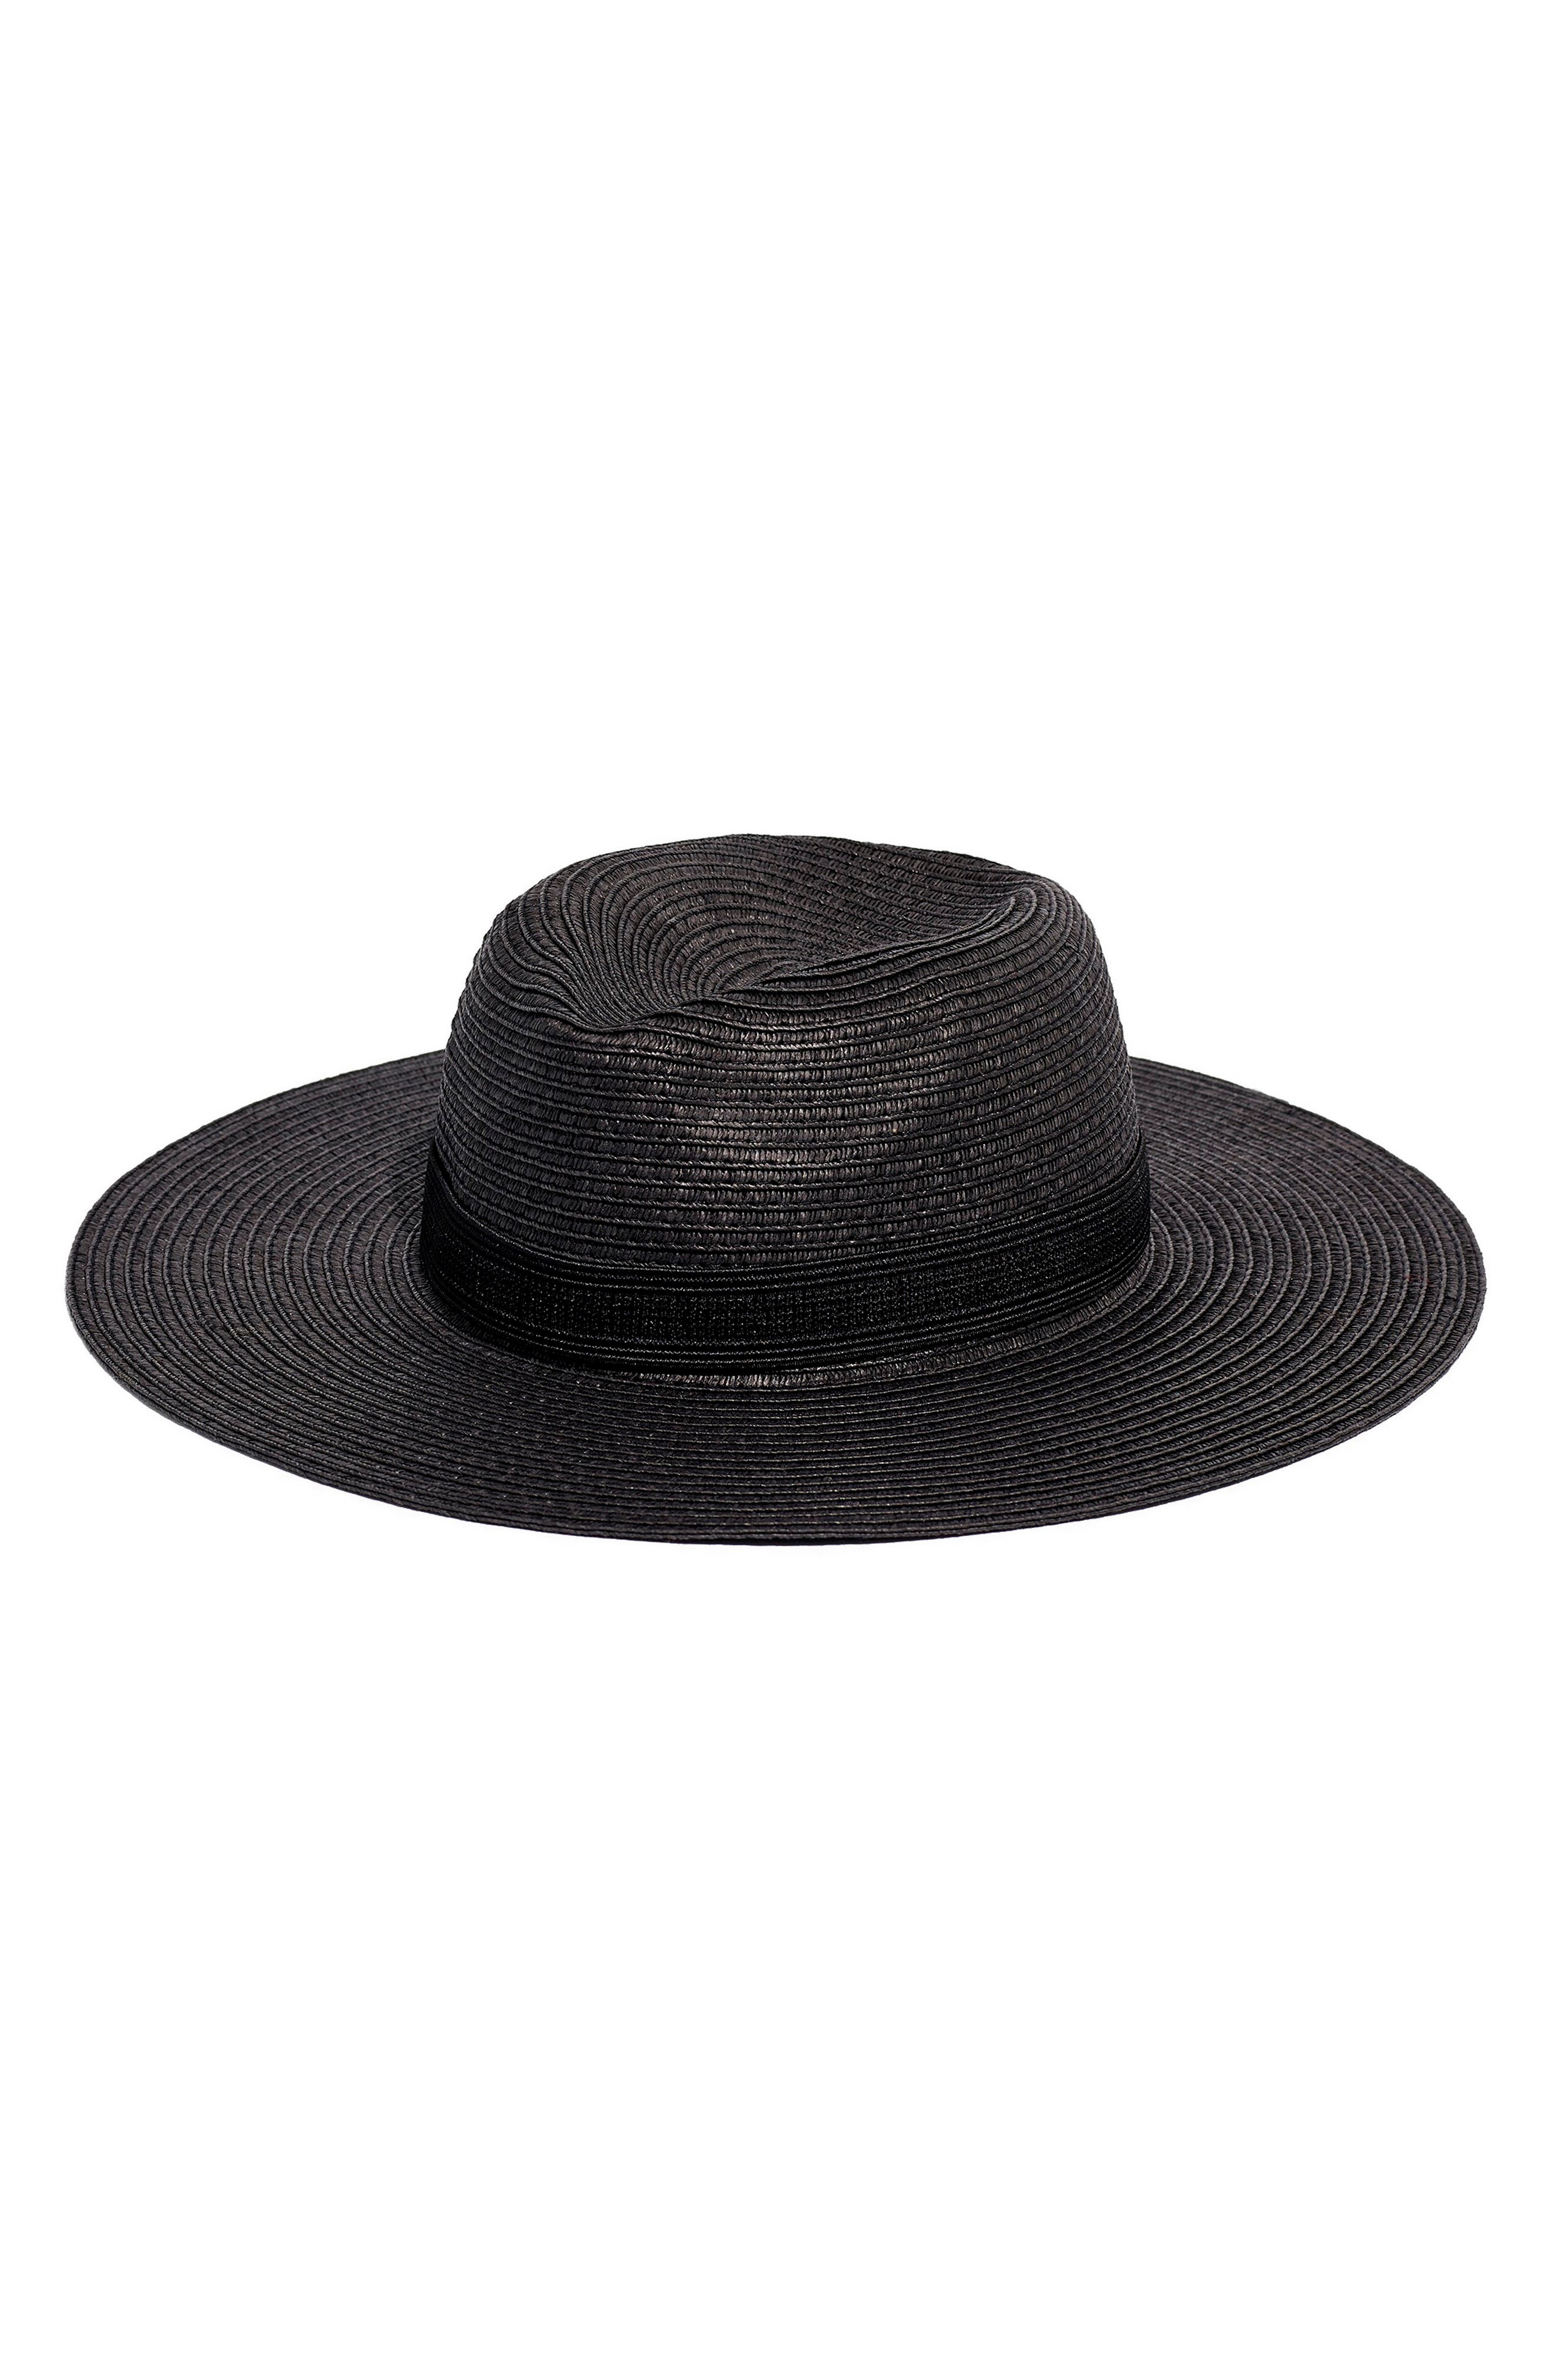 MADEWELL Mesa Packable Straw Hat, Main, color, TRUE BLACK STRAW